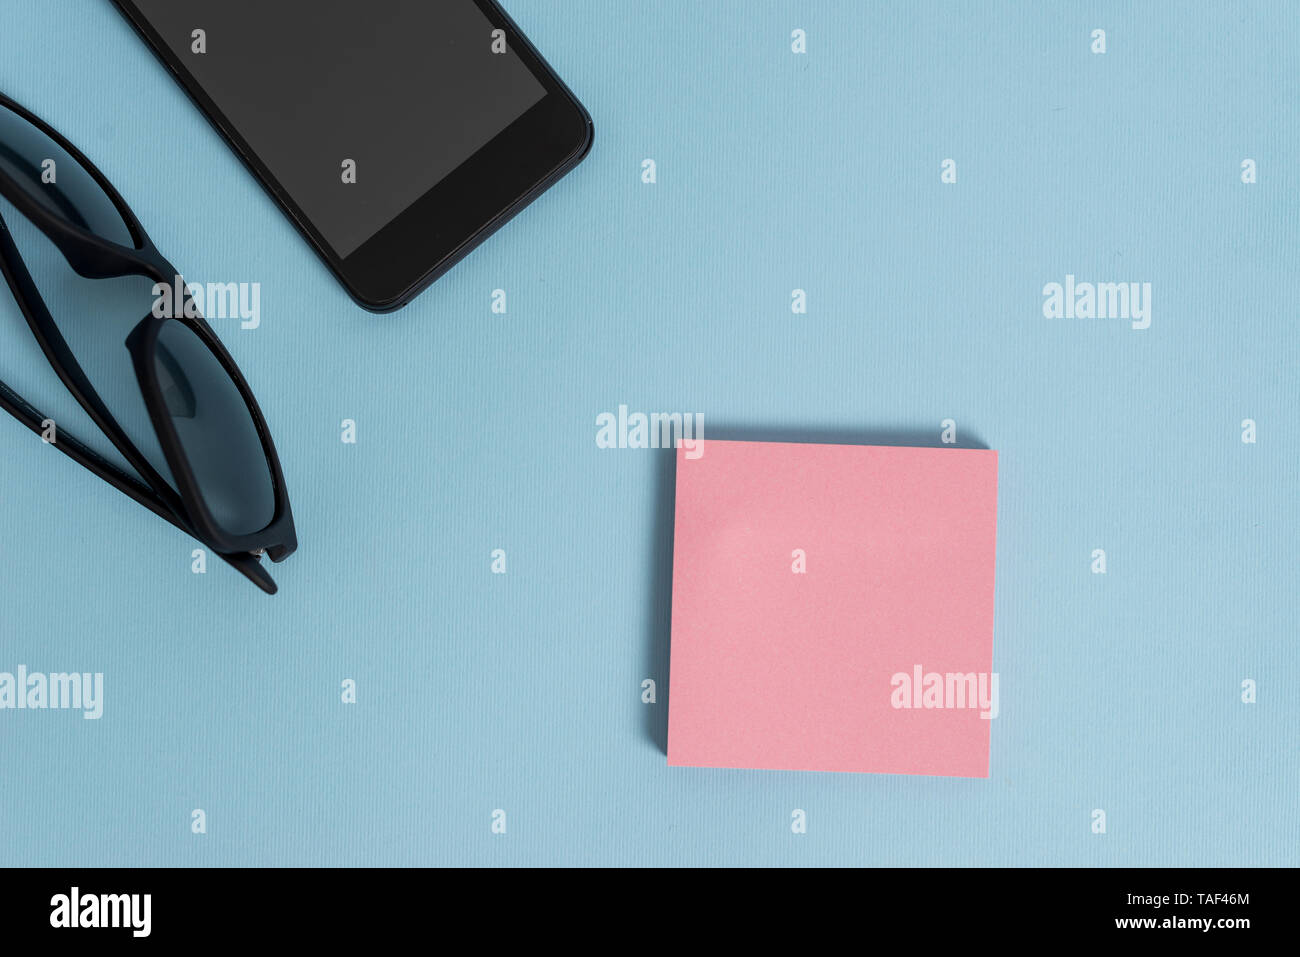 Dark eyeglasses colored sticky note smartphone fashion pastel background - Stock Image